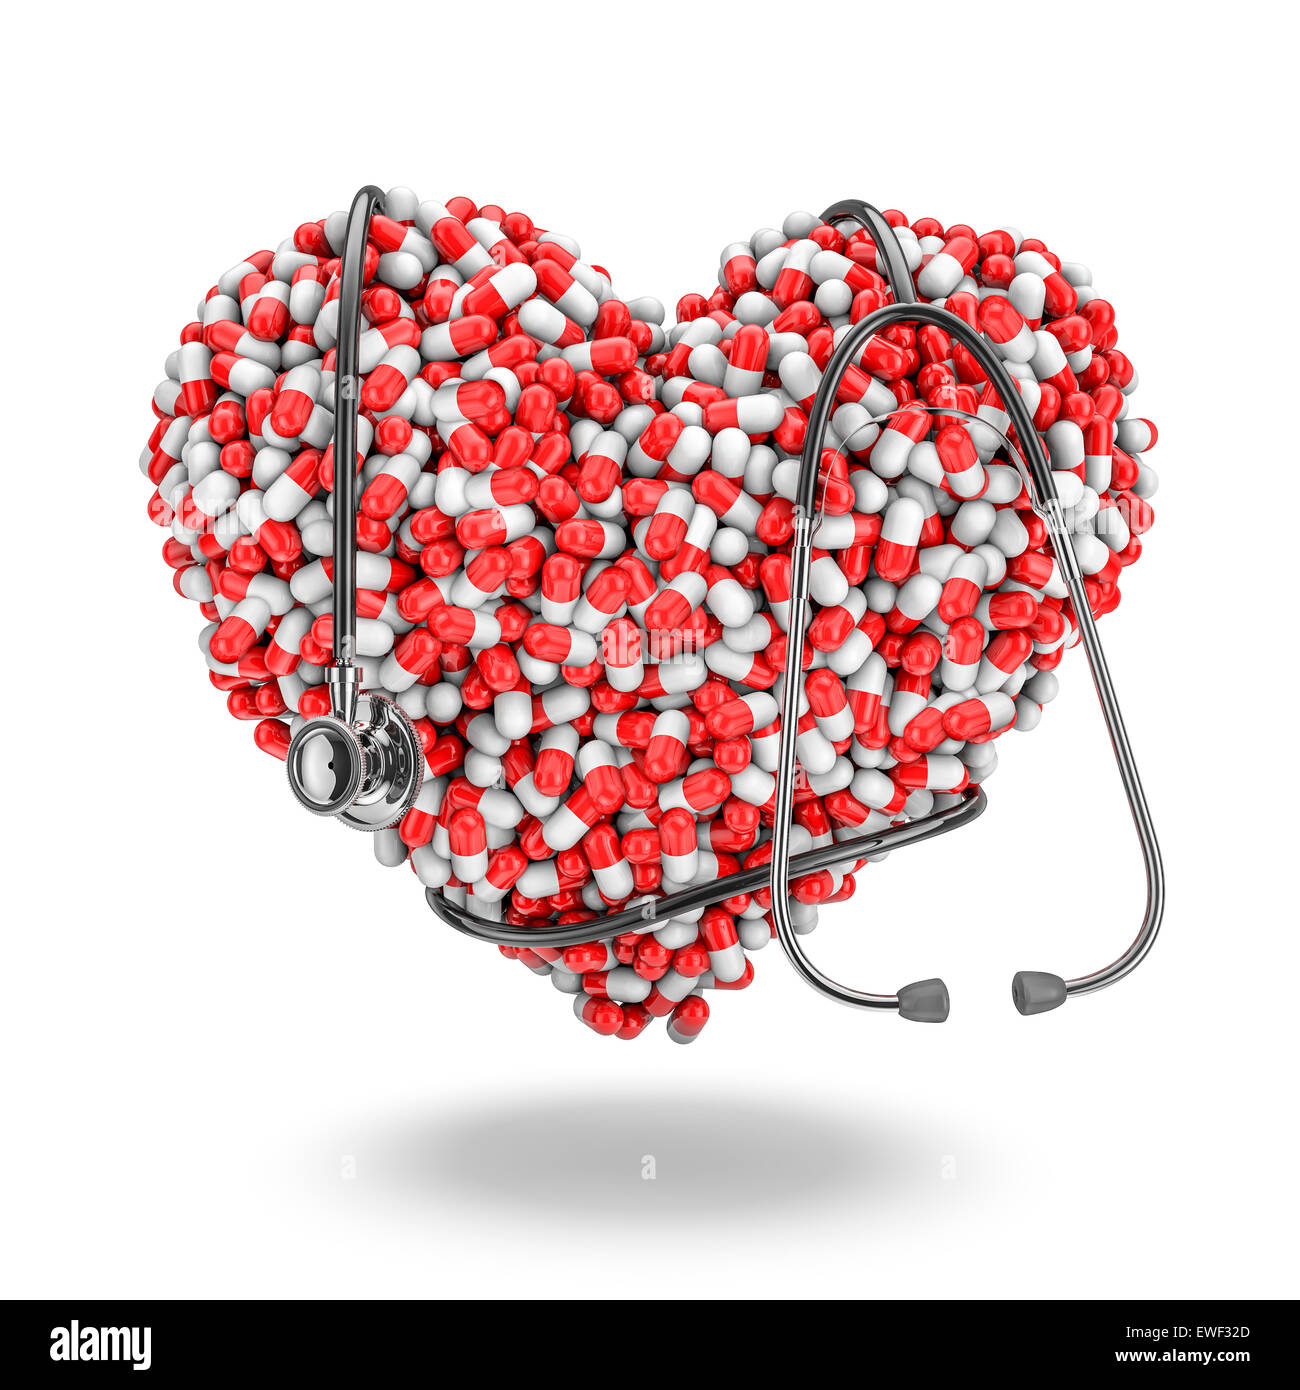 Heart pills stethoscope, 3D render of medicine capsules forming heart with stethoscope wrapped around it Stock Photo